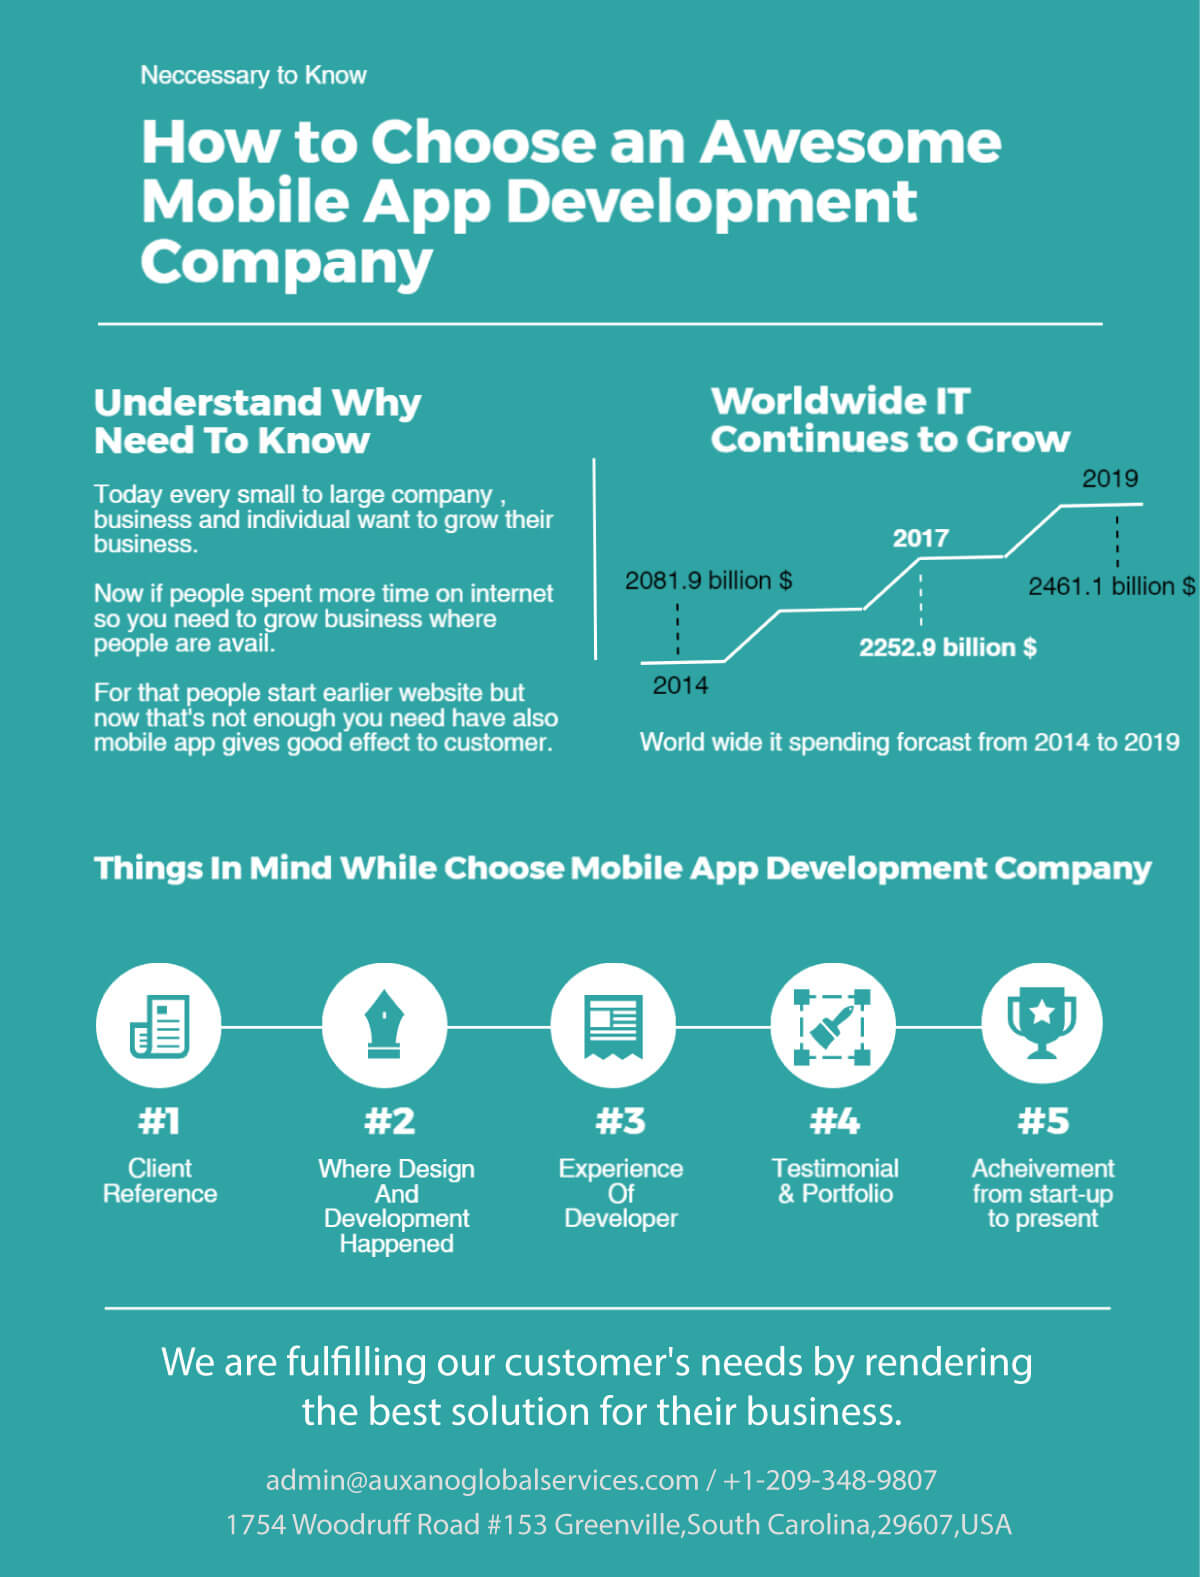 How-to-choose-an-awesome-mobile-app-development-company